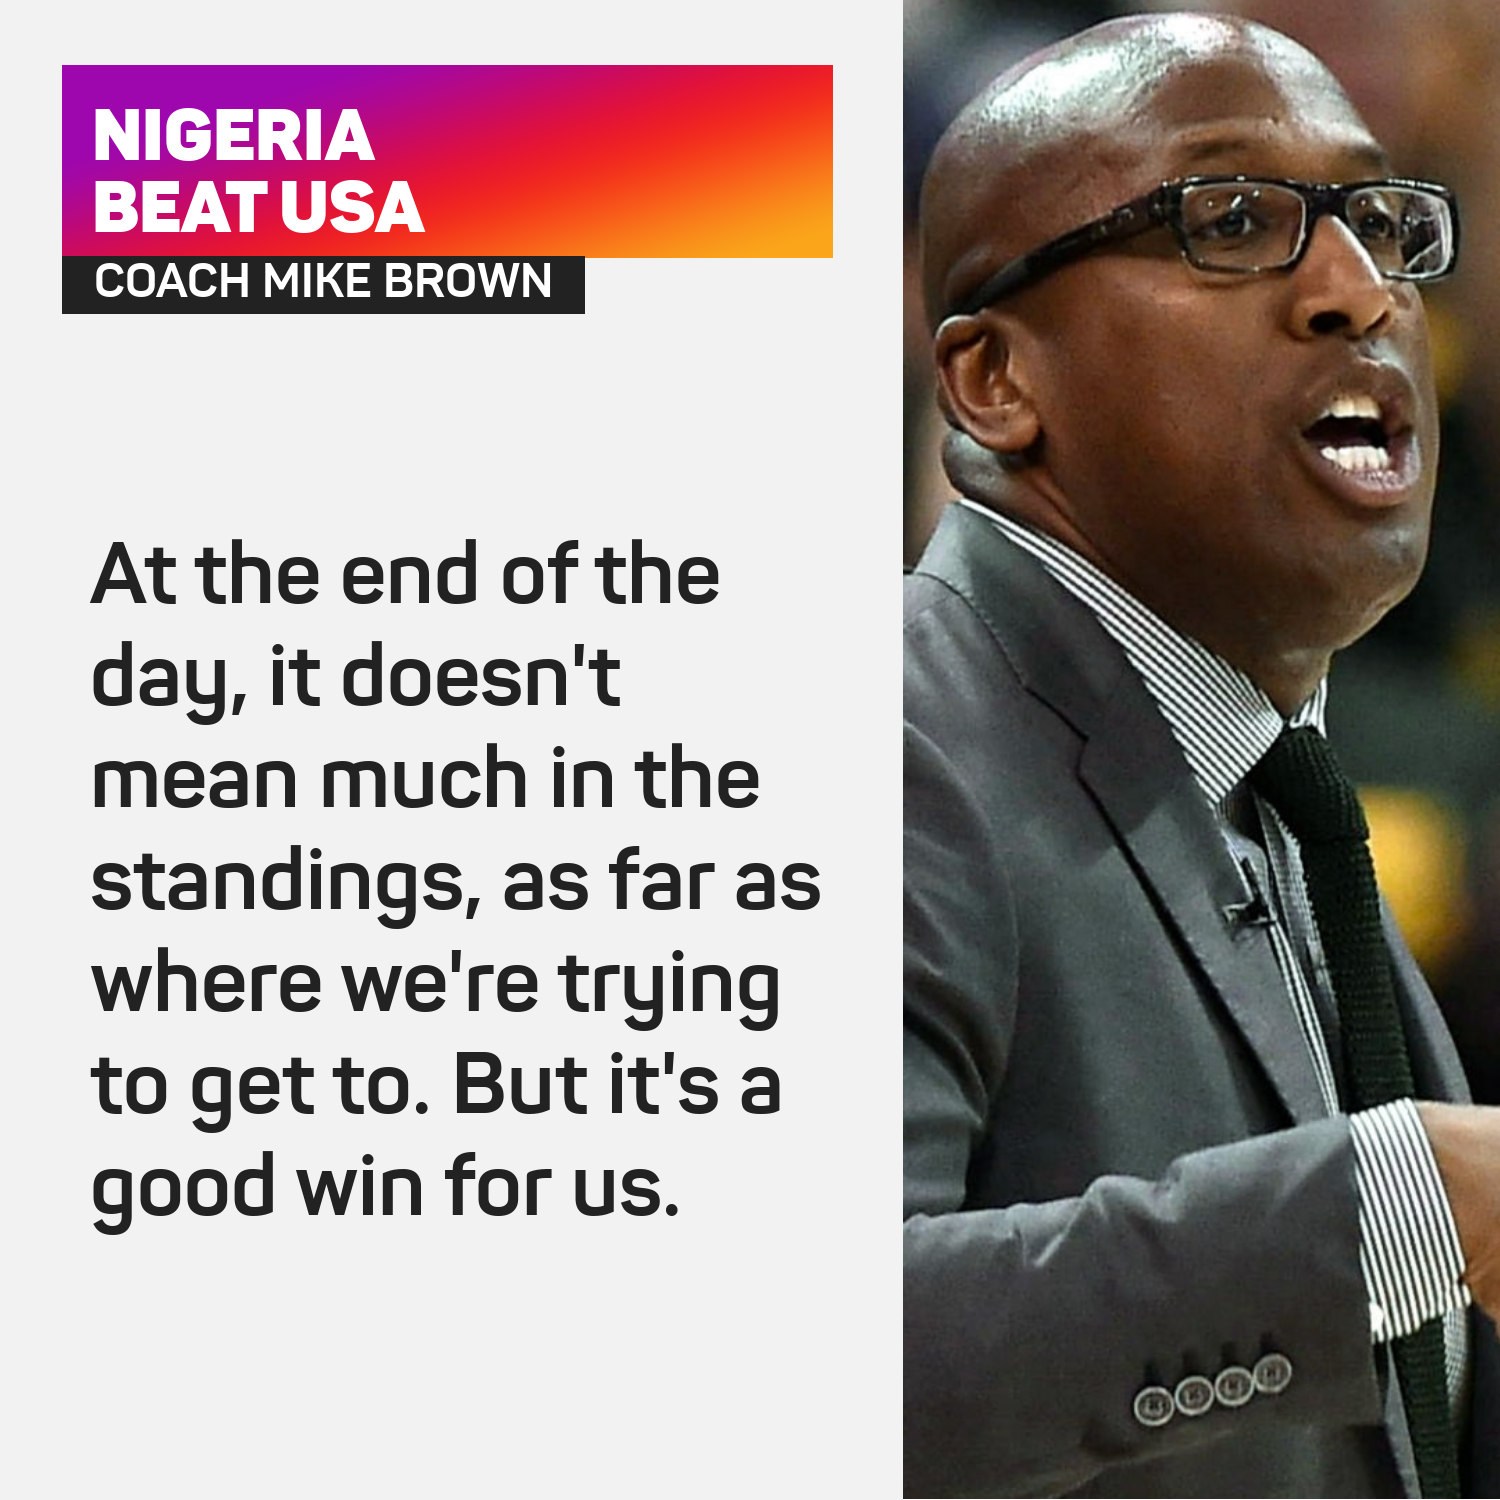 Mike Brown reacts to Nigeria's win